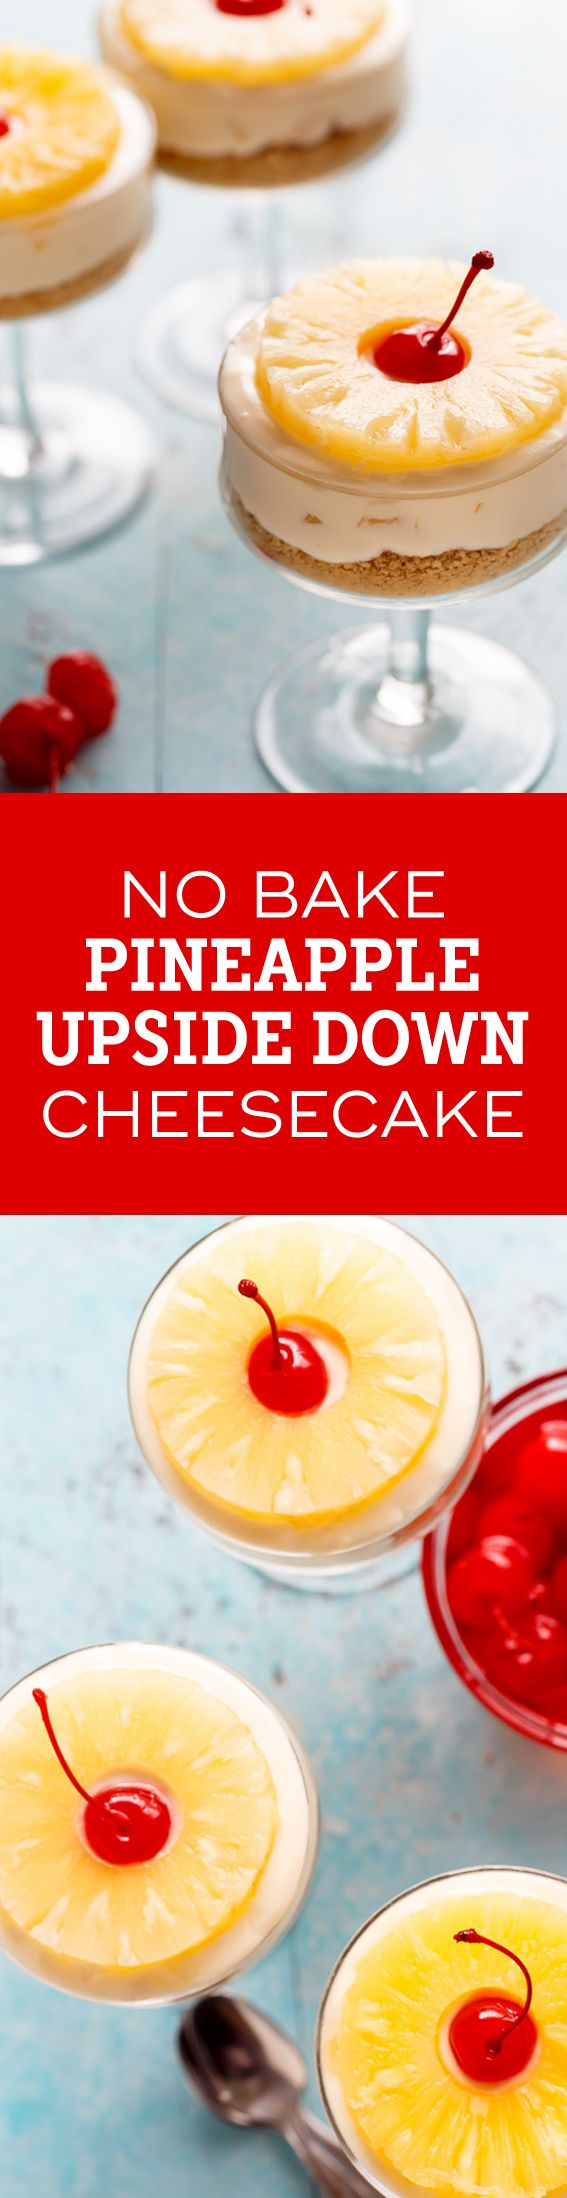 No Bake Pineapple Cheesecake gives you a sweet taste of pineapple in every bite. So delicious and perfect for summer! from @bakingaddiction